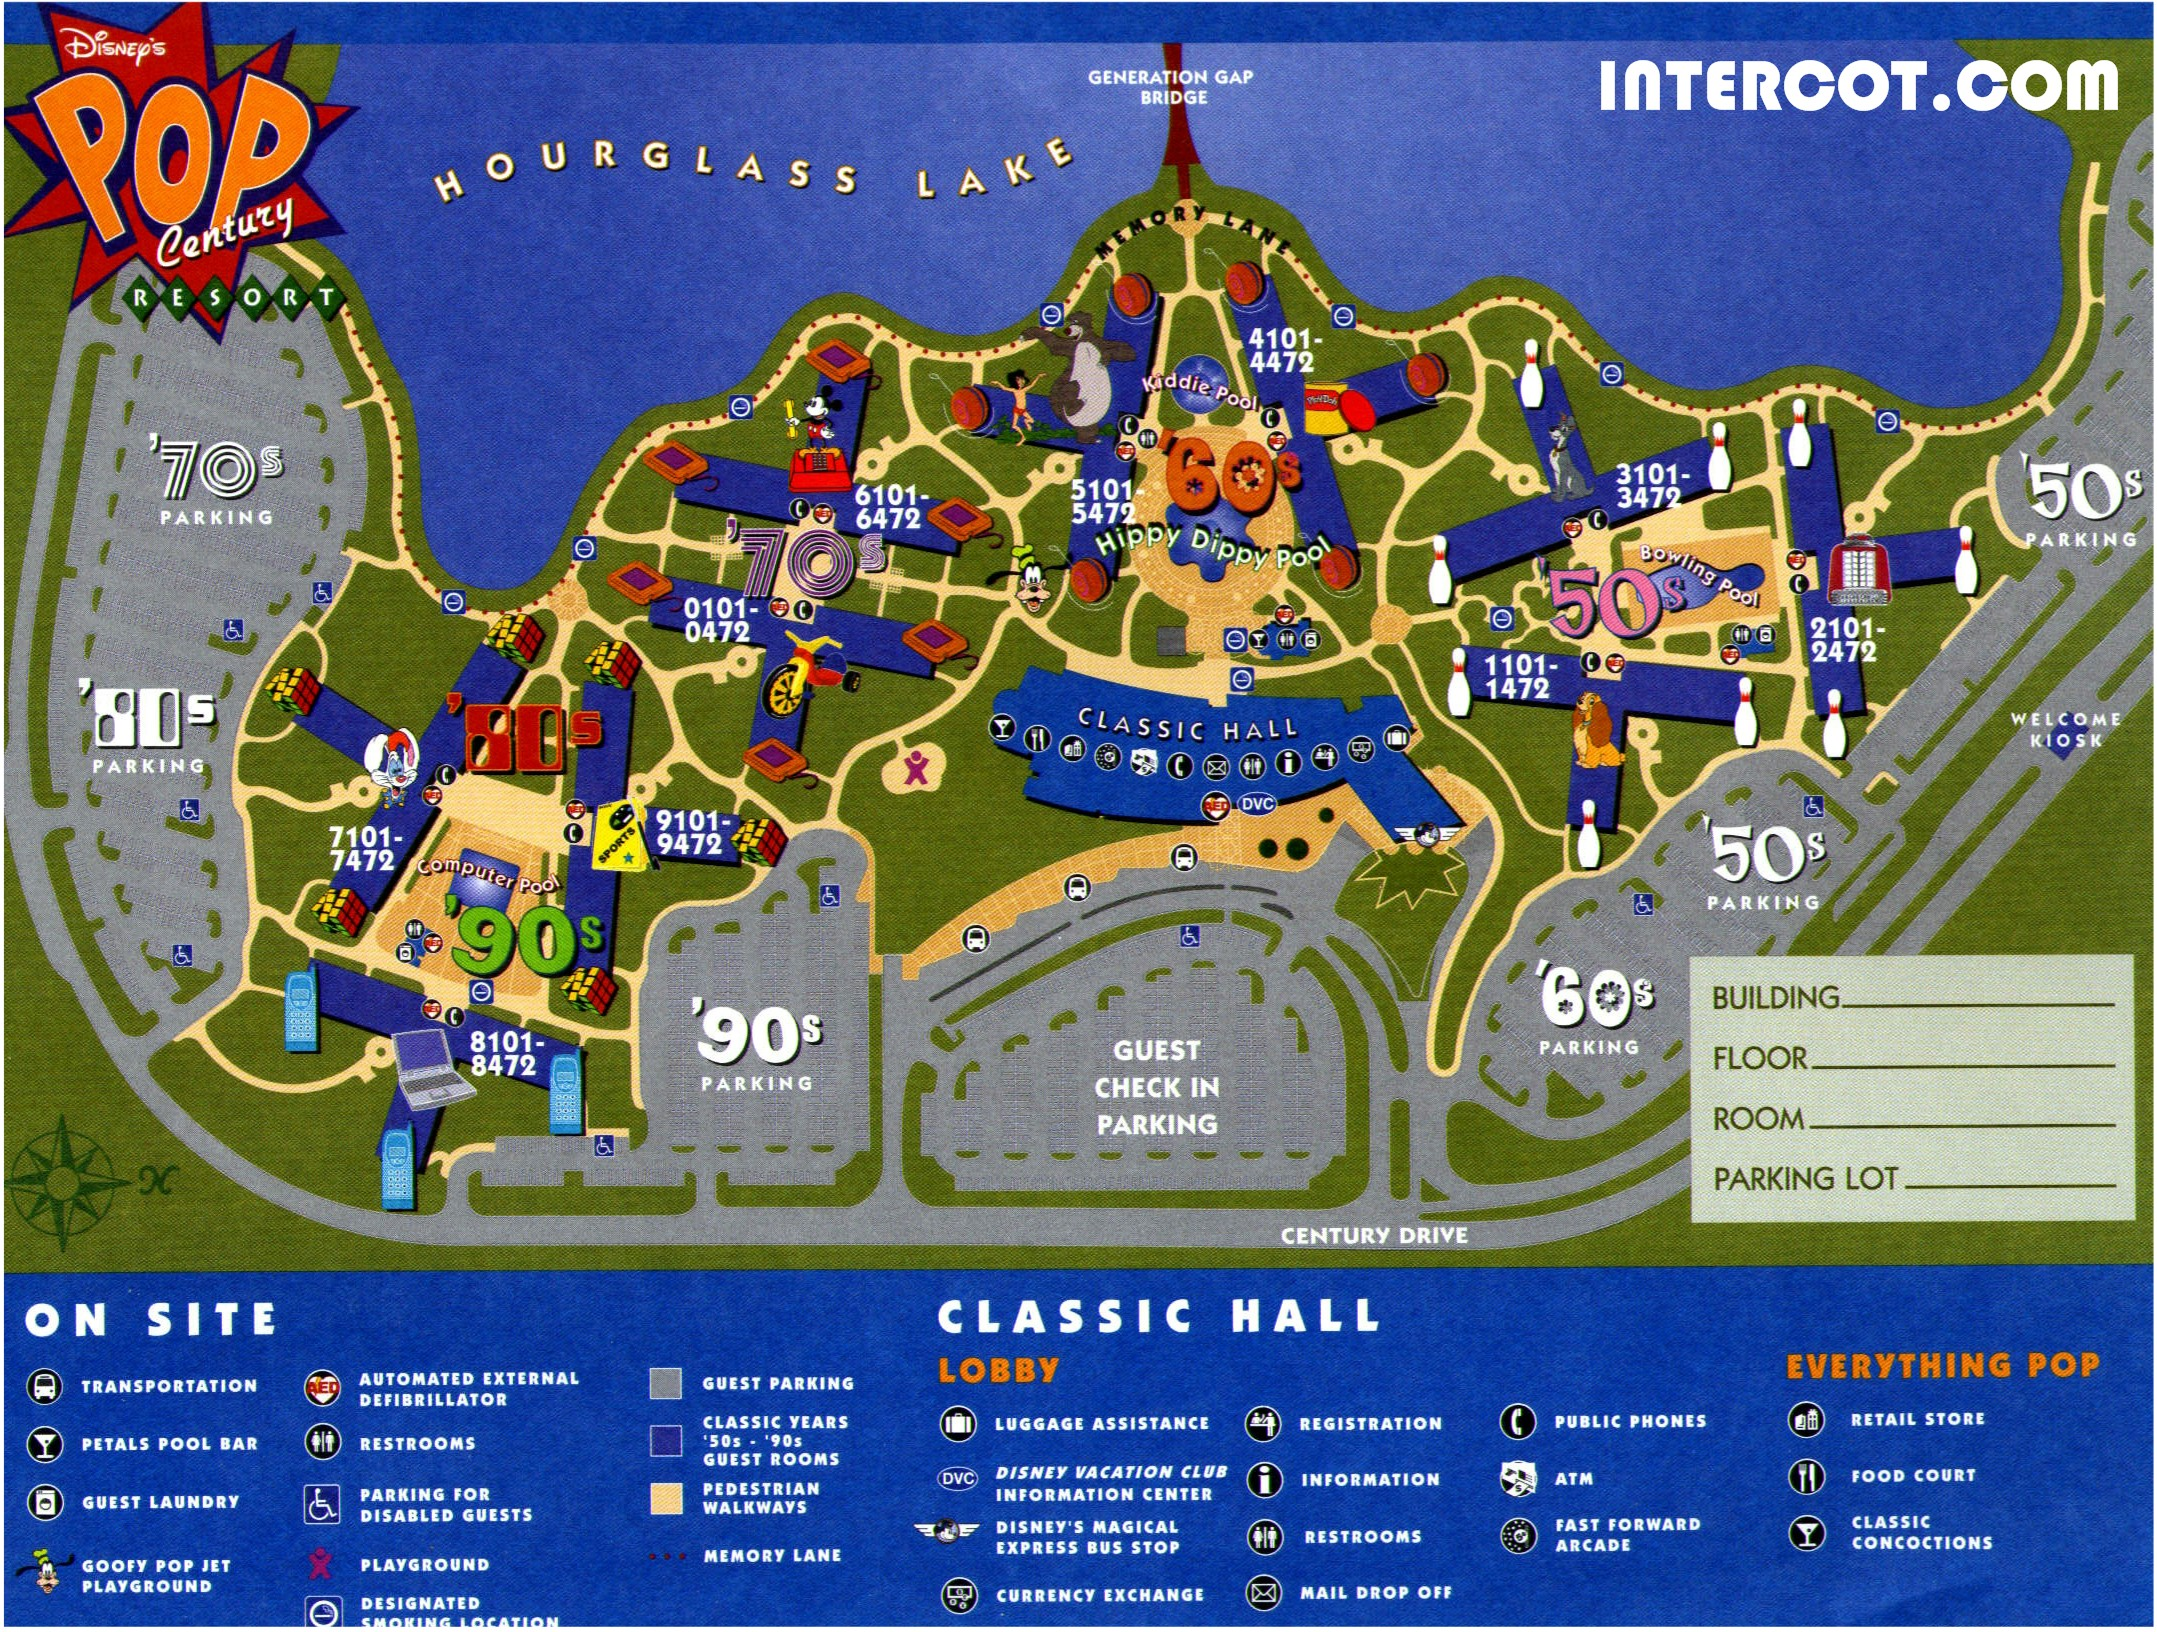 Walt Disney World - Disney World Vacation Information Guide ... on